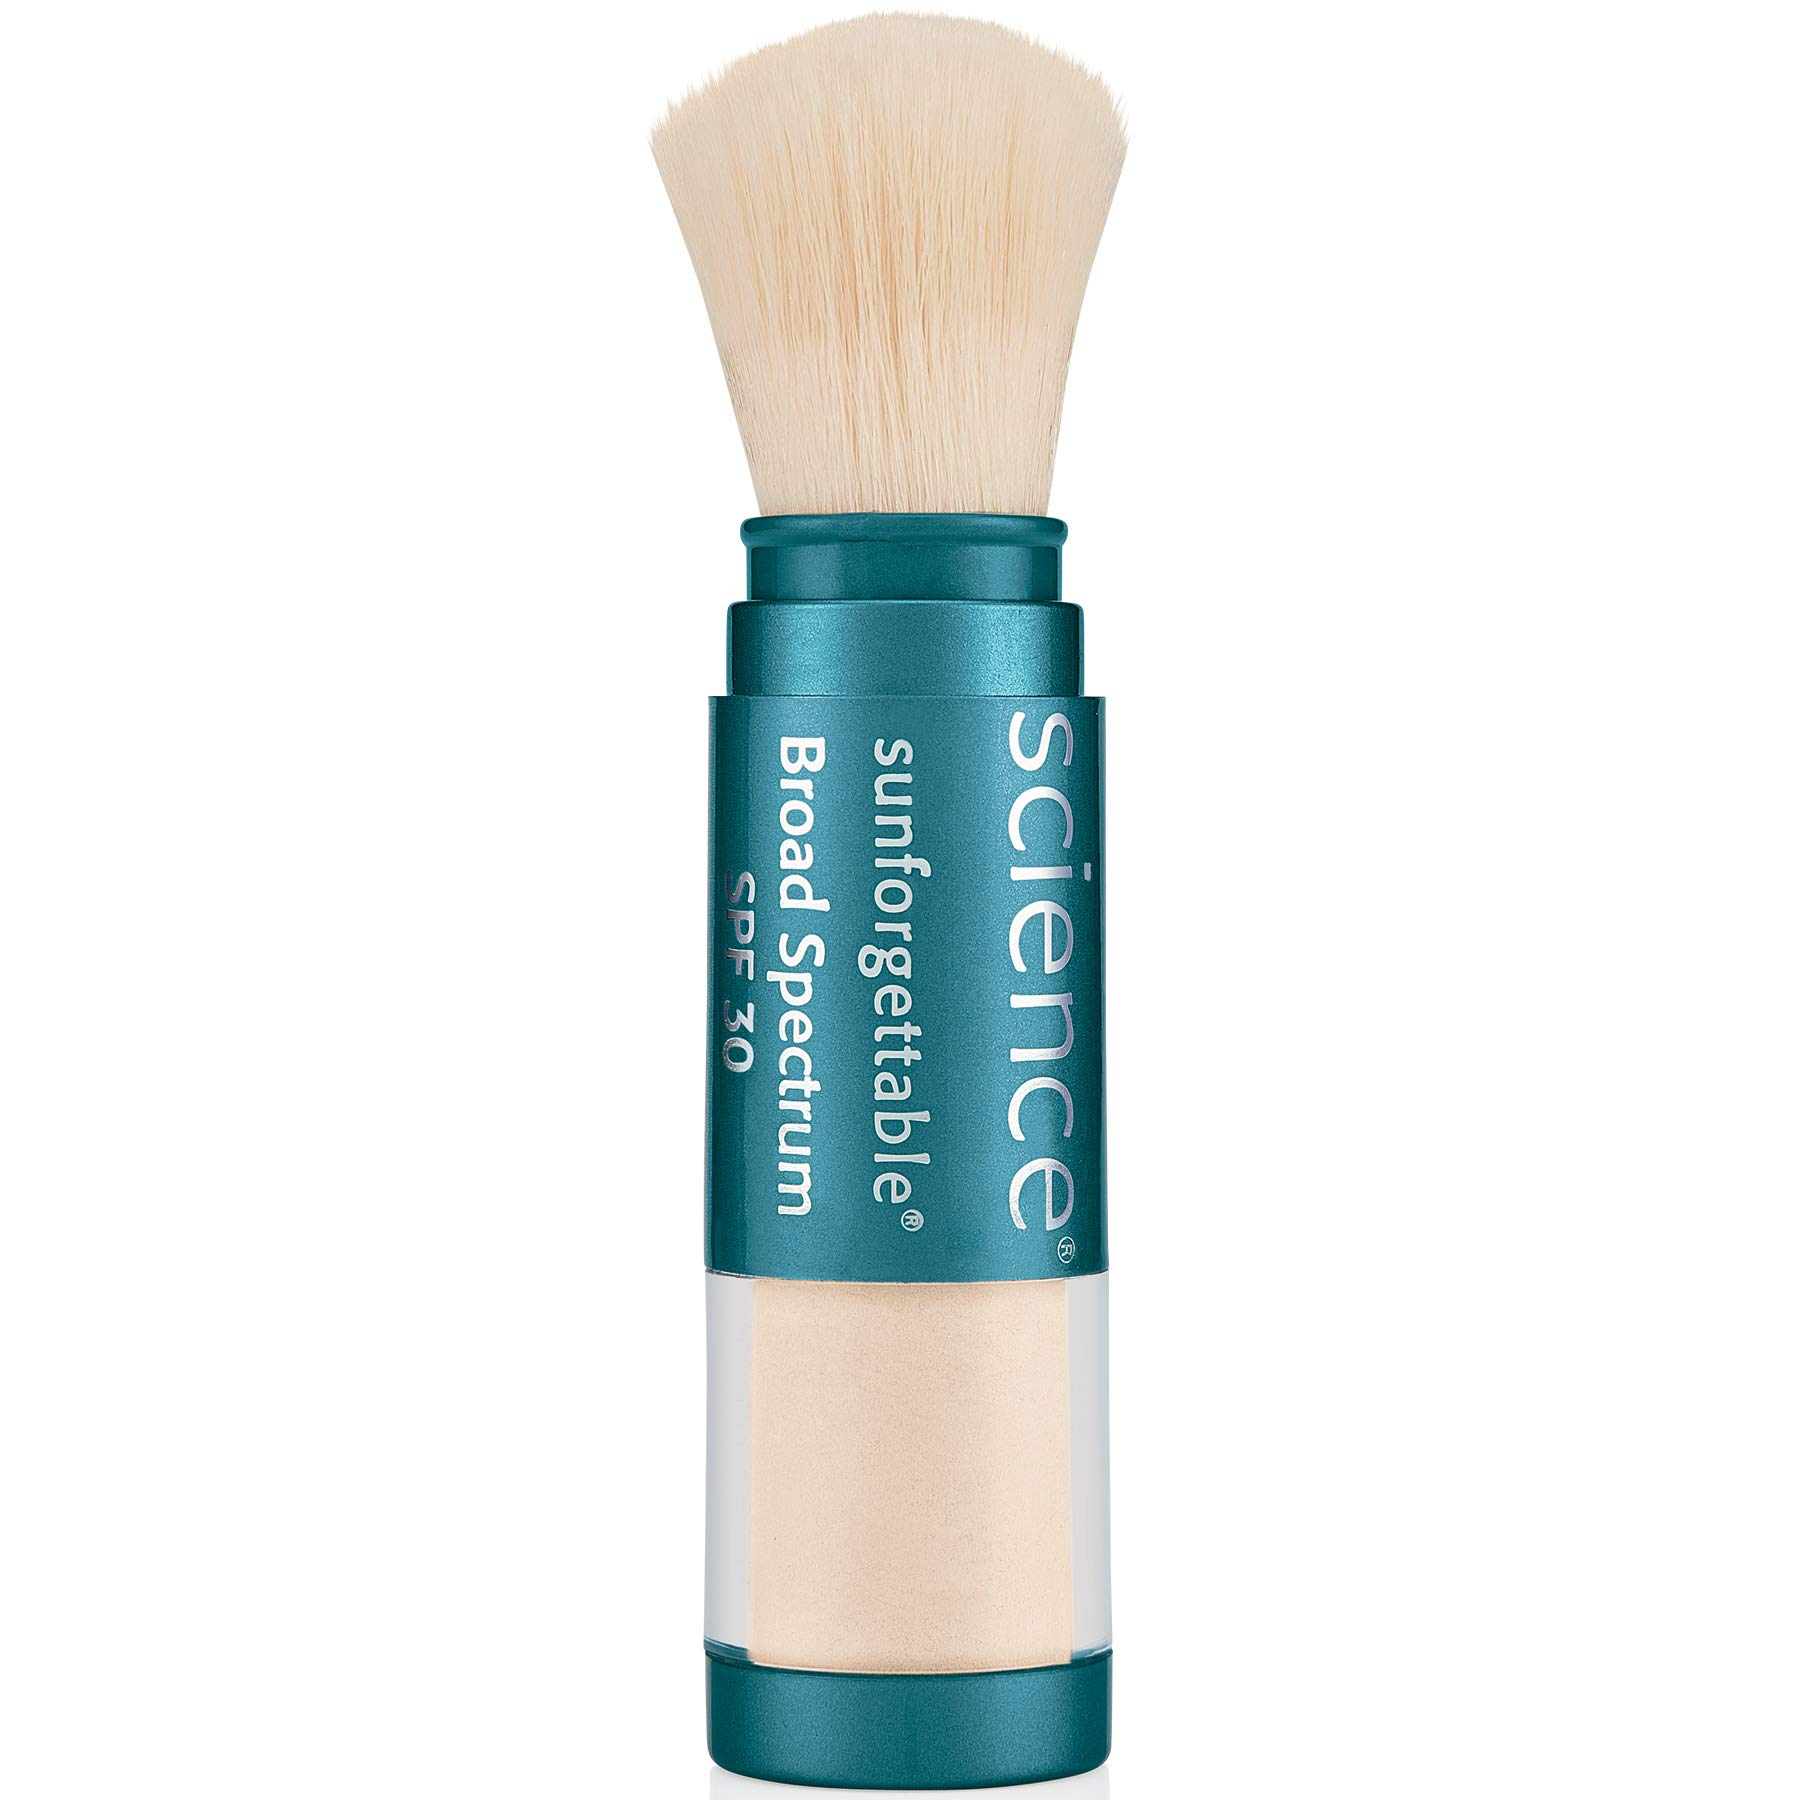 Colorescience Brush-On Sunscreen, Sunforgettable Mineral, Powder for Sensitive Skin, Broad Spectrum SPF 30 UVA/UVB Protection, 1 Count by Colorescience